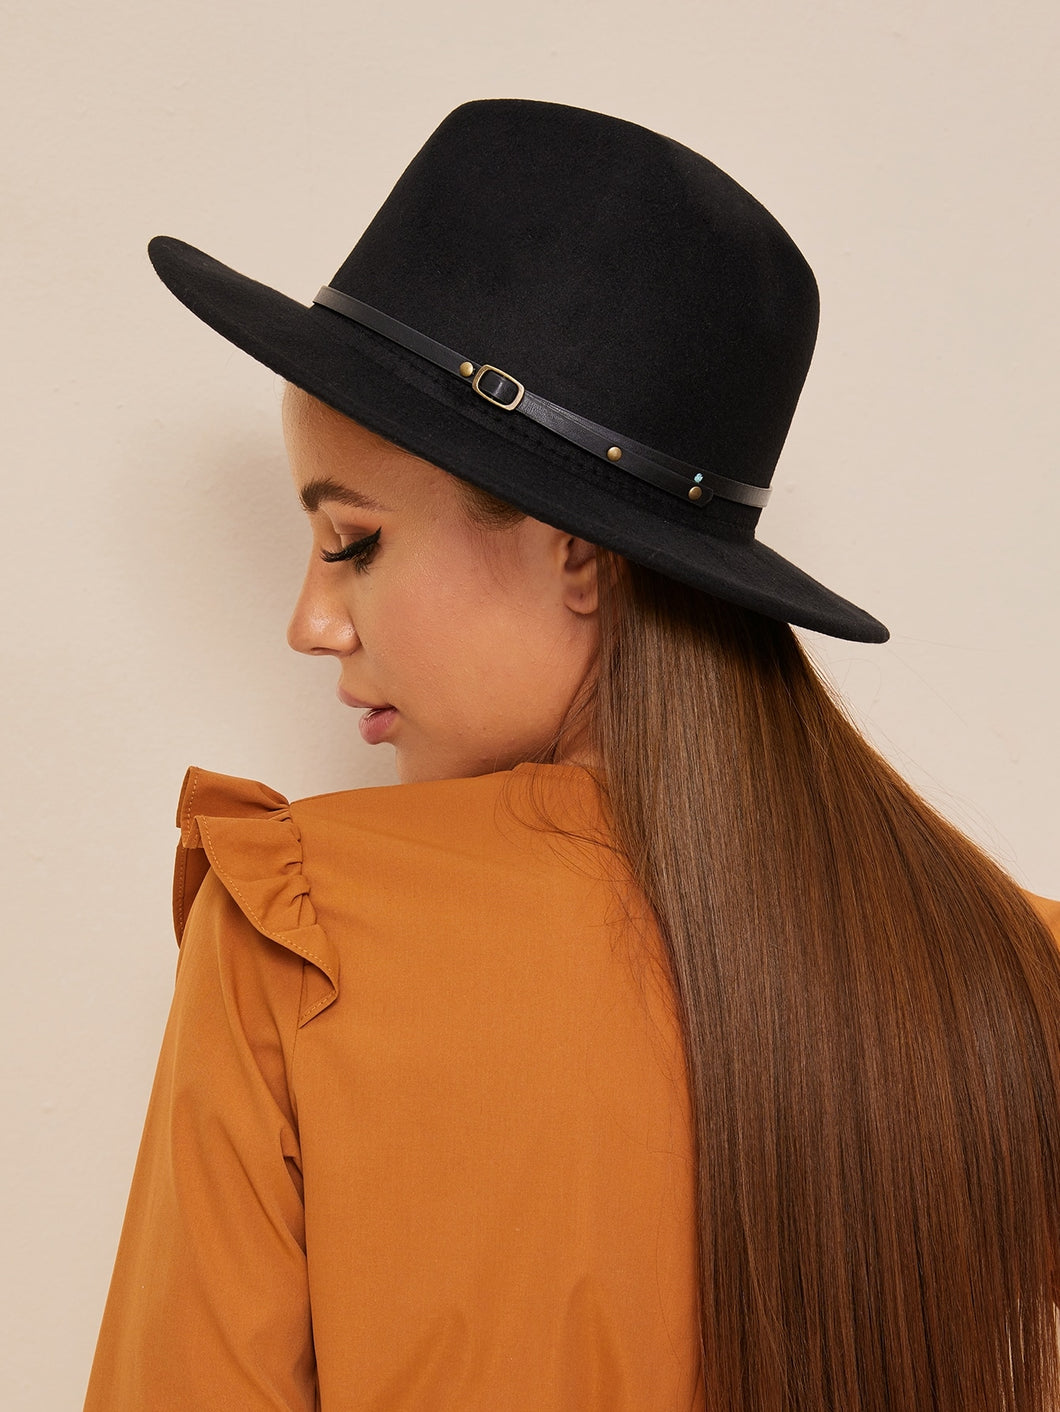 HAT Belted Decor Floppy Hat - EK CHIC